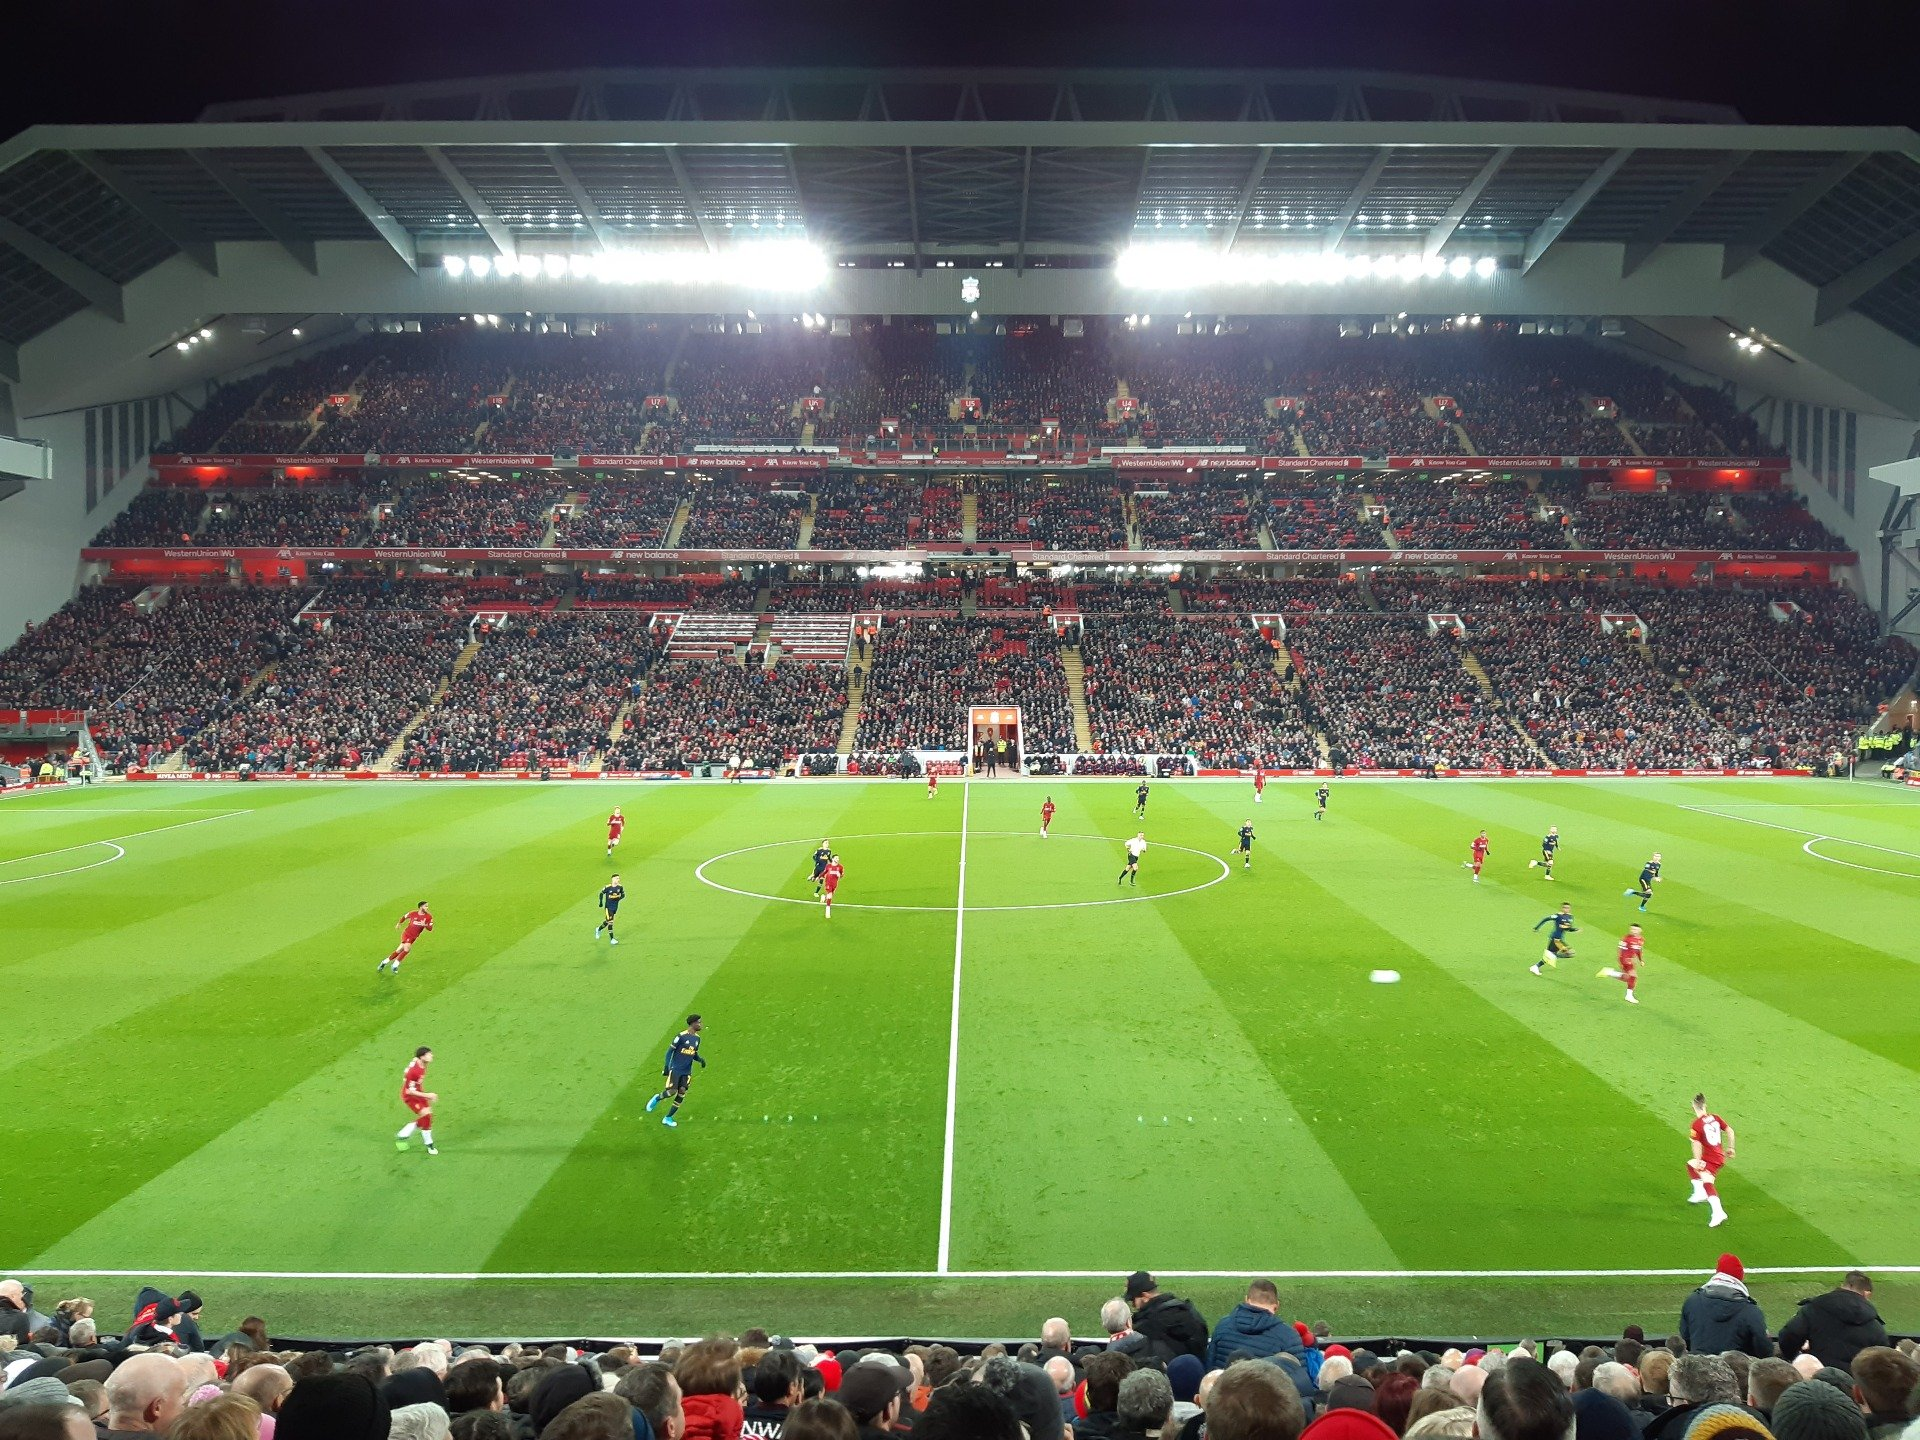 Anfield Section KK Row 24 Seat 124